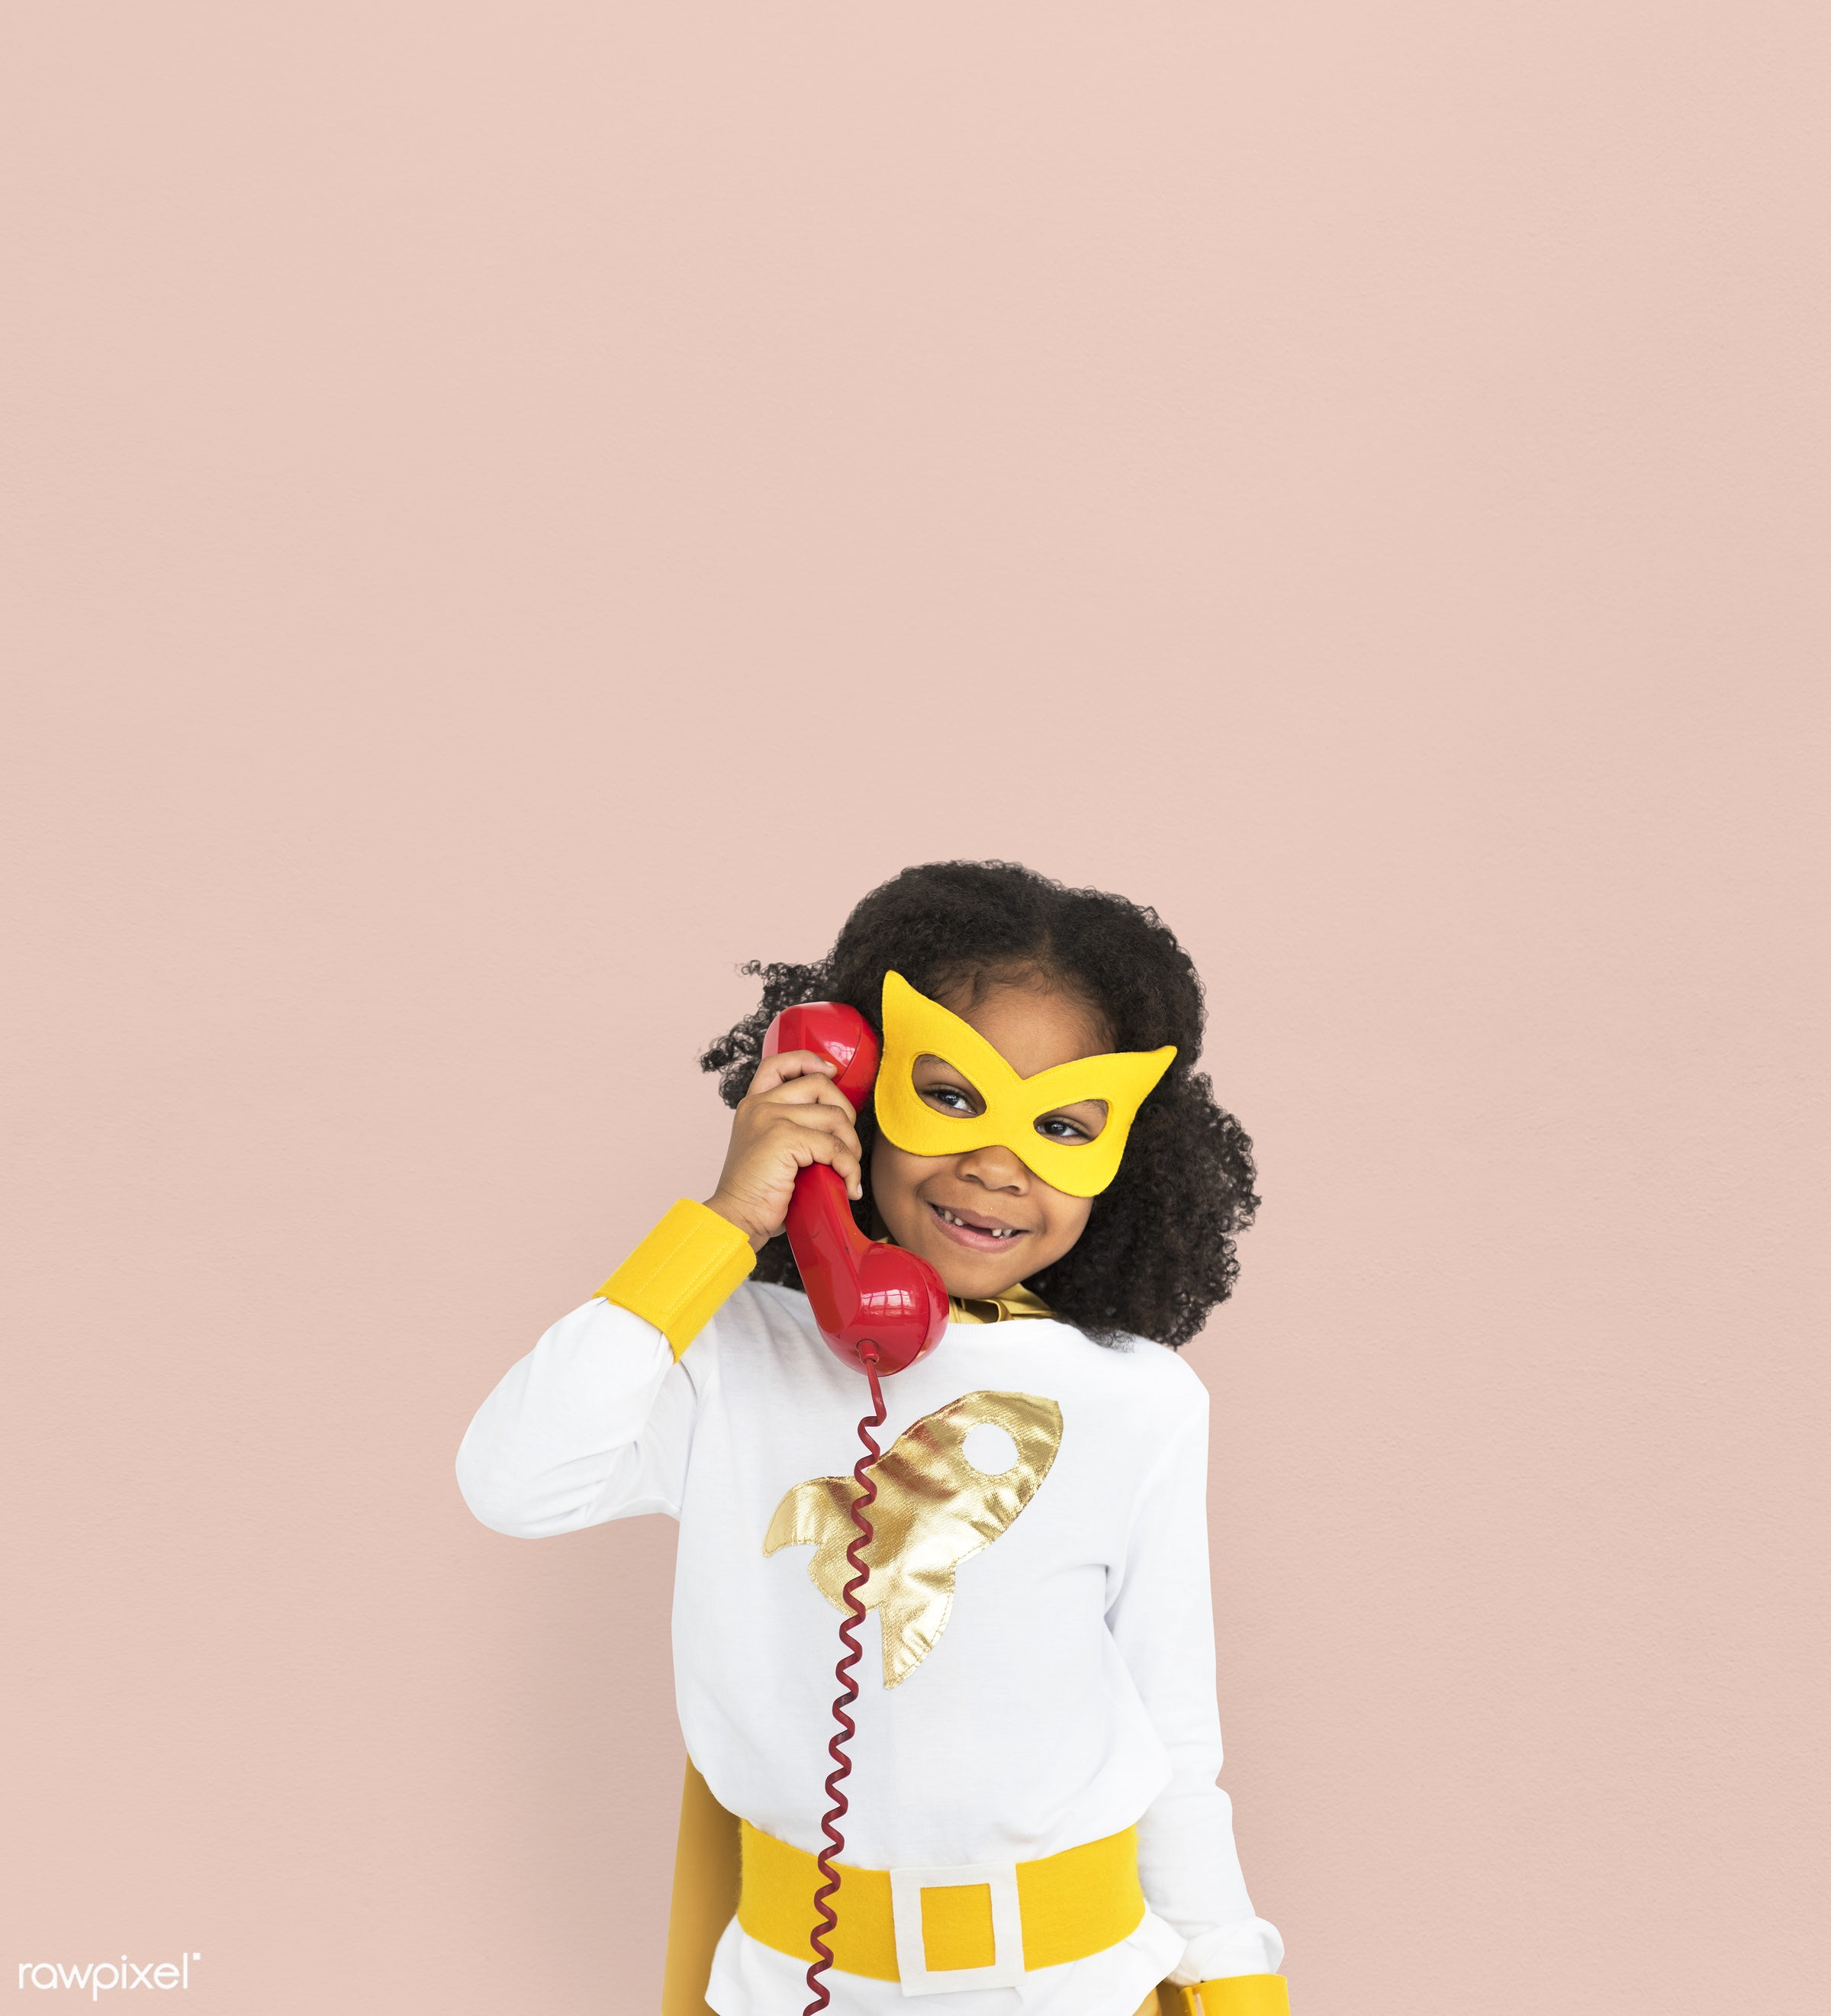 studio, expression, person, mask, people, kid, telecommunication, solo, pink, childhood, smile, cheerful, smiling, isolated...